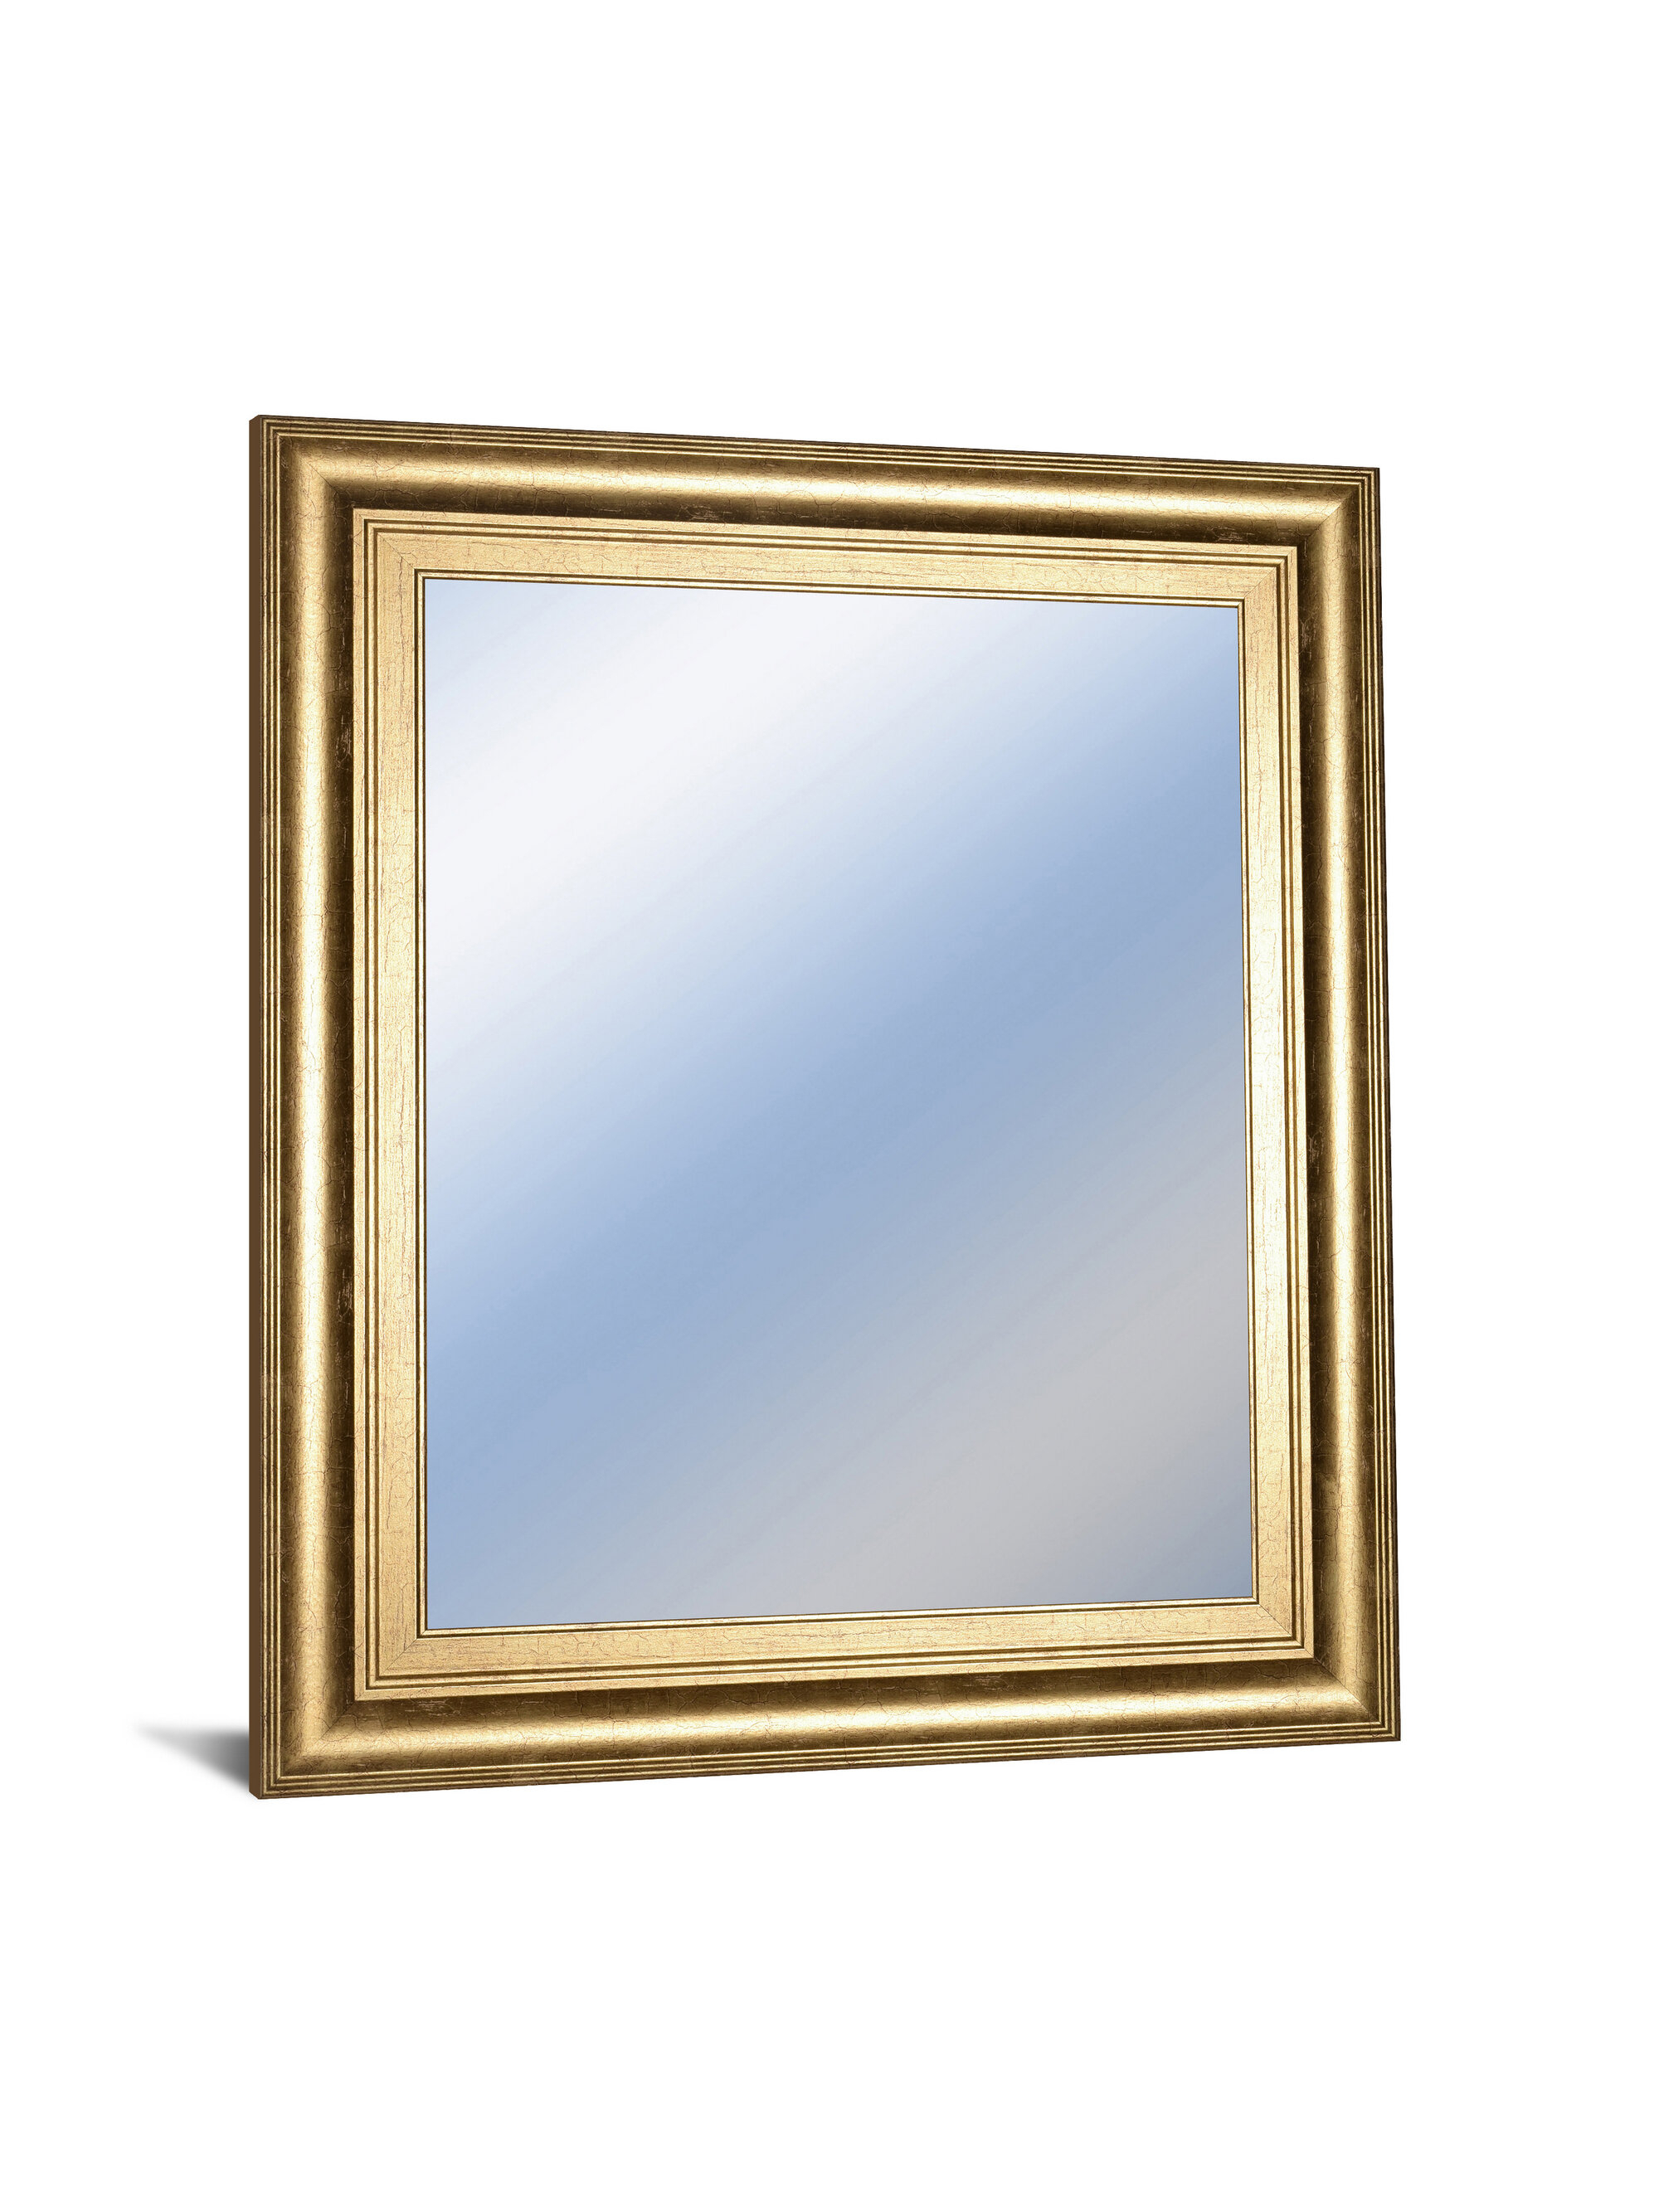 Dedrick Decorative Framed Modern And Contemporary Wall Mirror Intended For Dedrick Decorative Framed Modern And Contemporary Wall Mirrors (View 2 of 20)